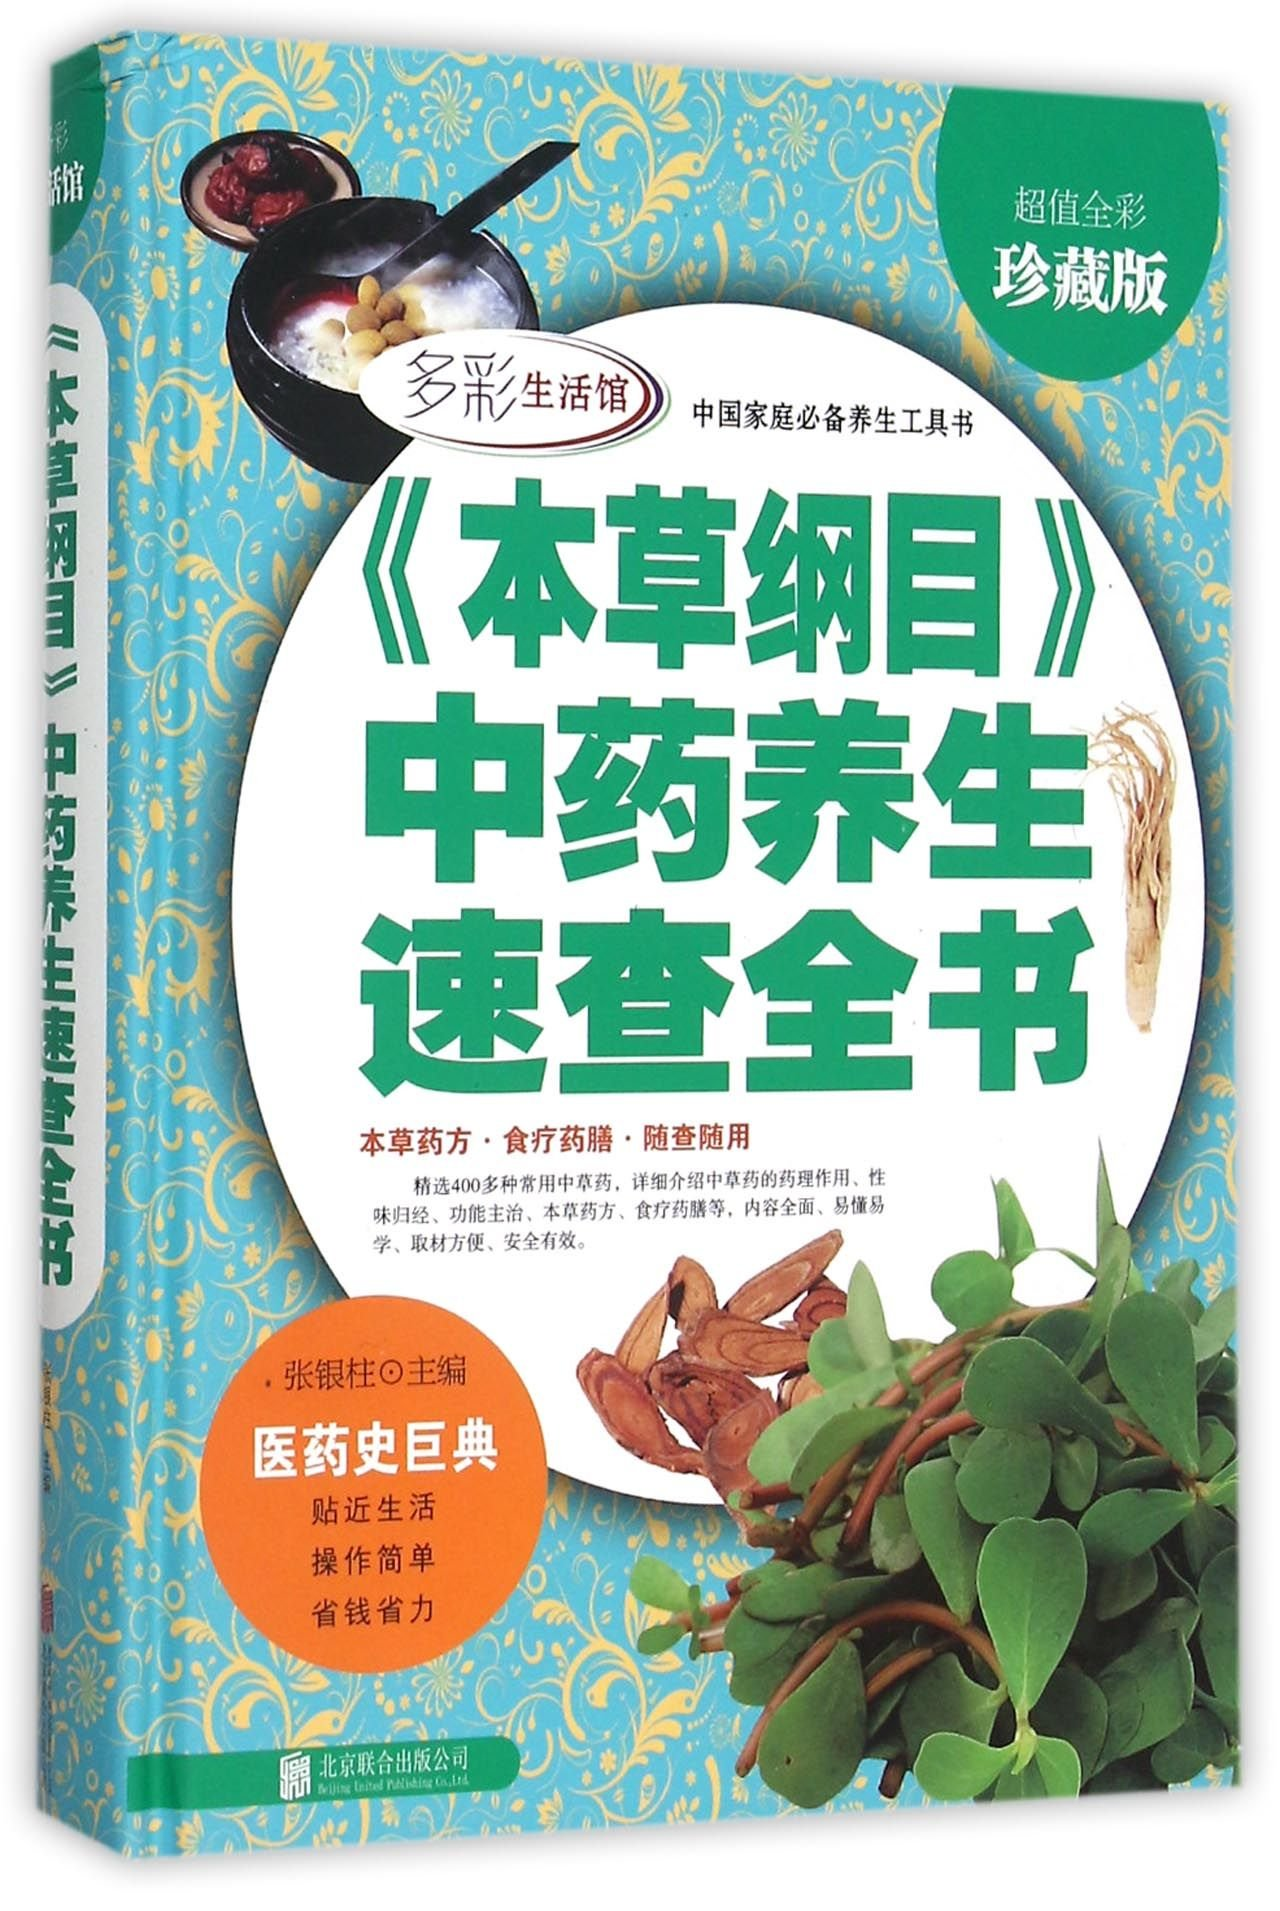 Download Quick Access to Health Maintenance of TCM in Compendium of Materia Medica (Chinese Edition) pdf epub